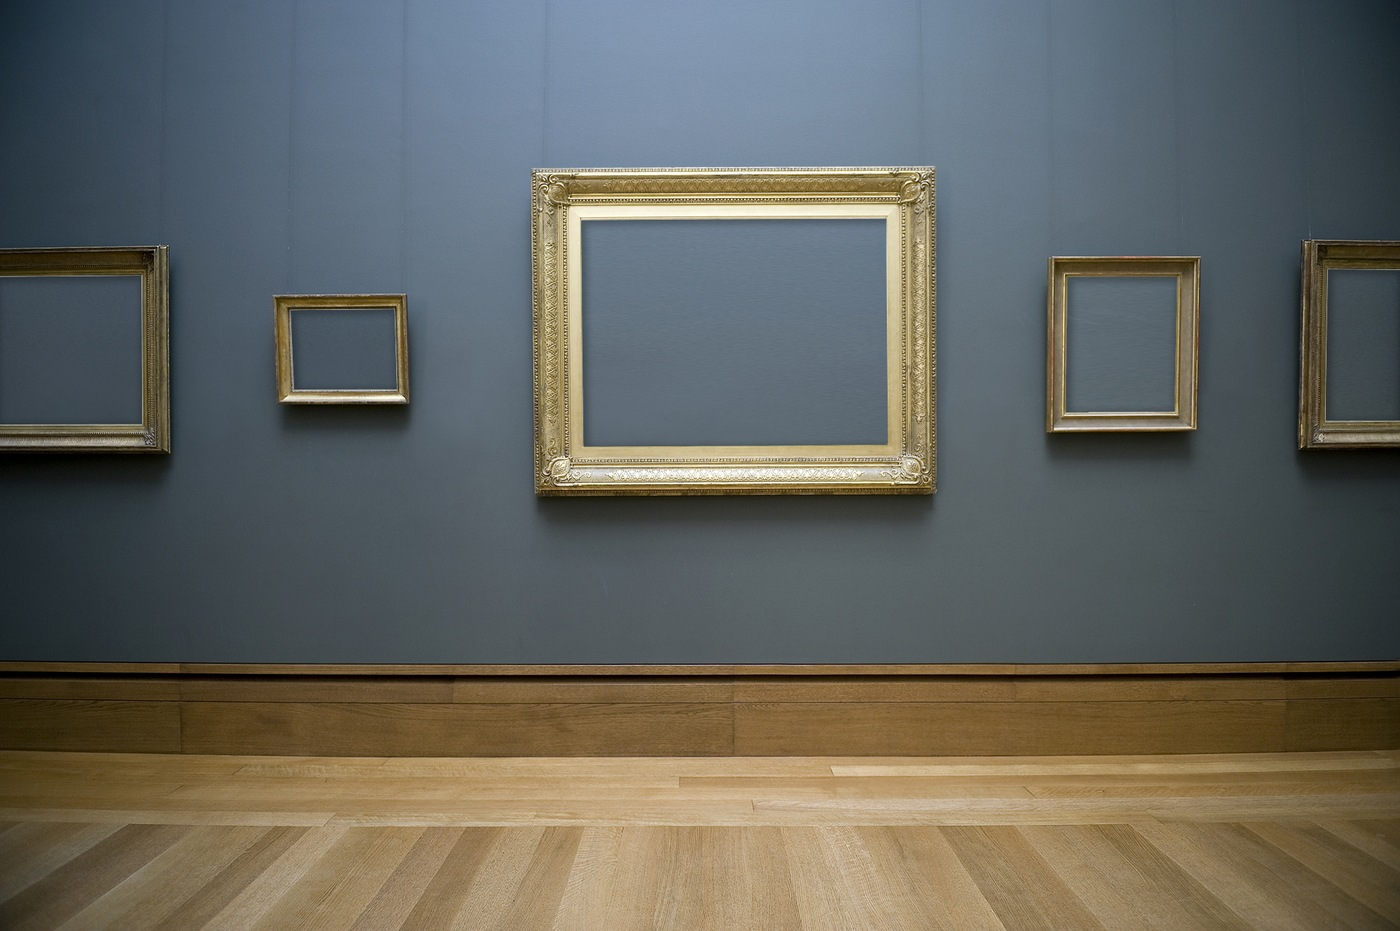 Stock image depicting an art gallery wall with multiple empty frames.